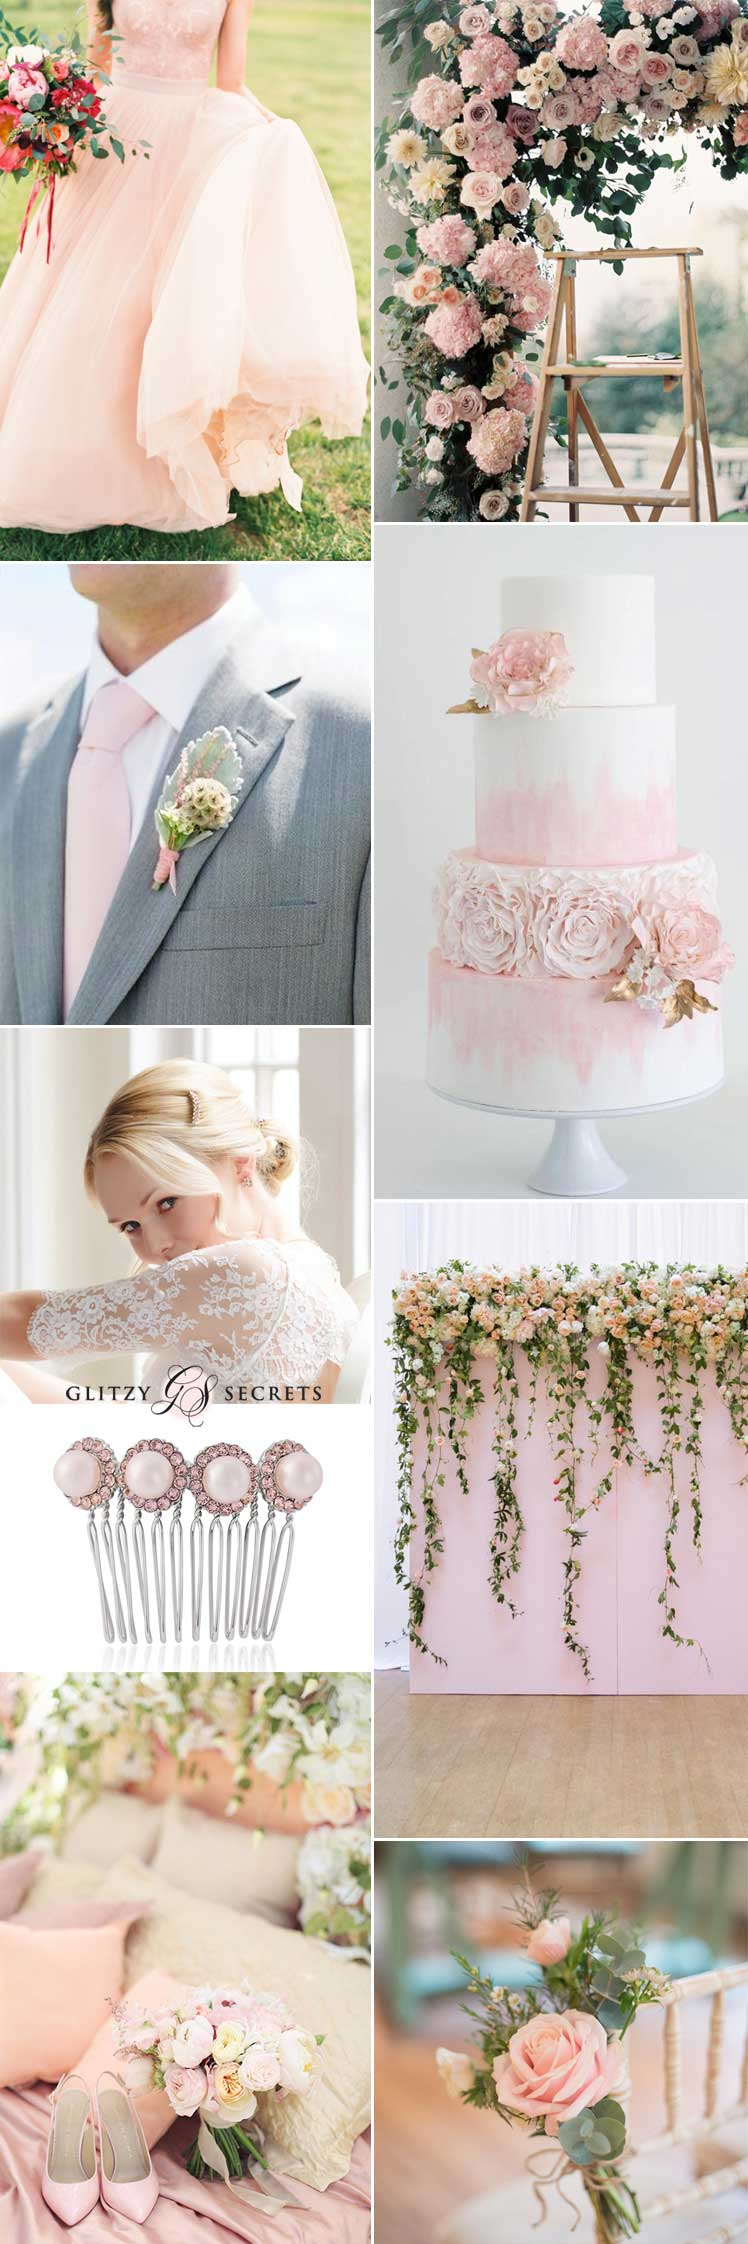 pretty pink wedding ideas